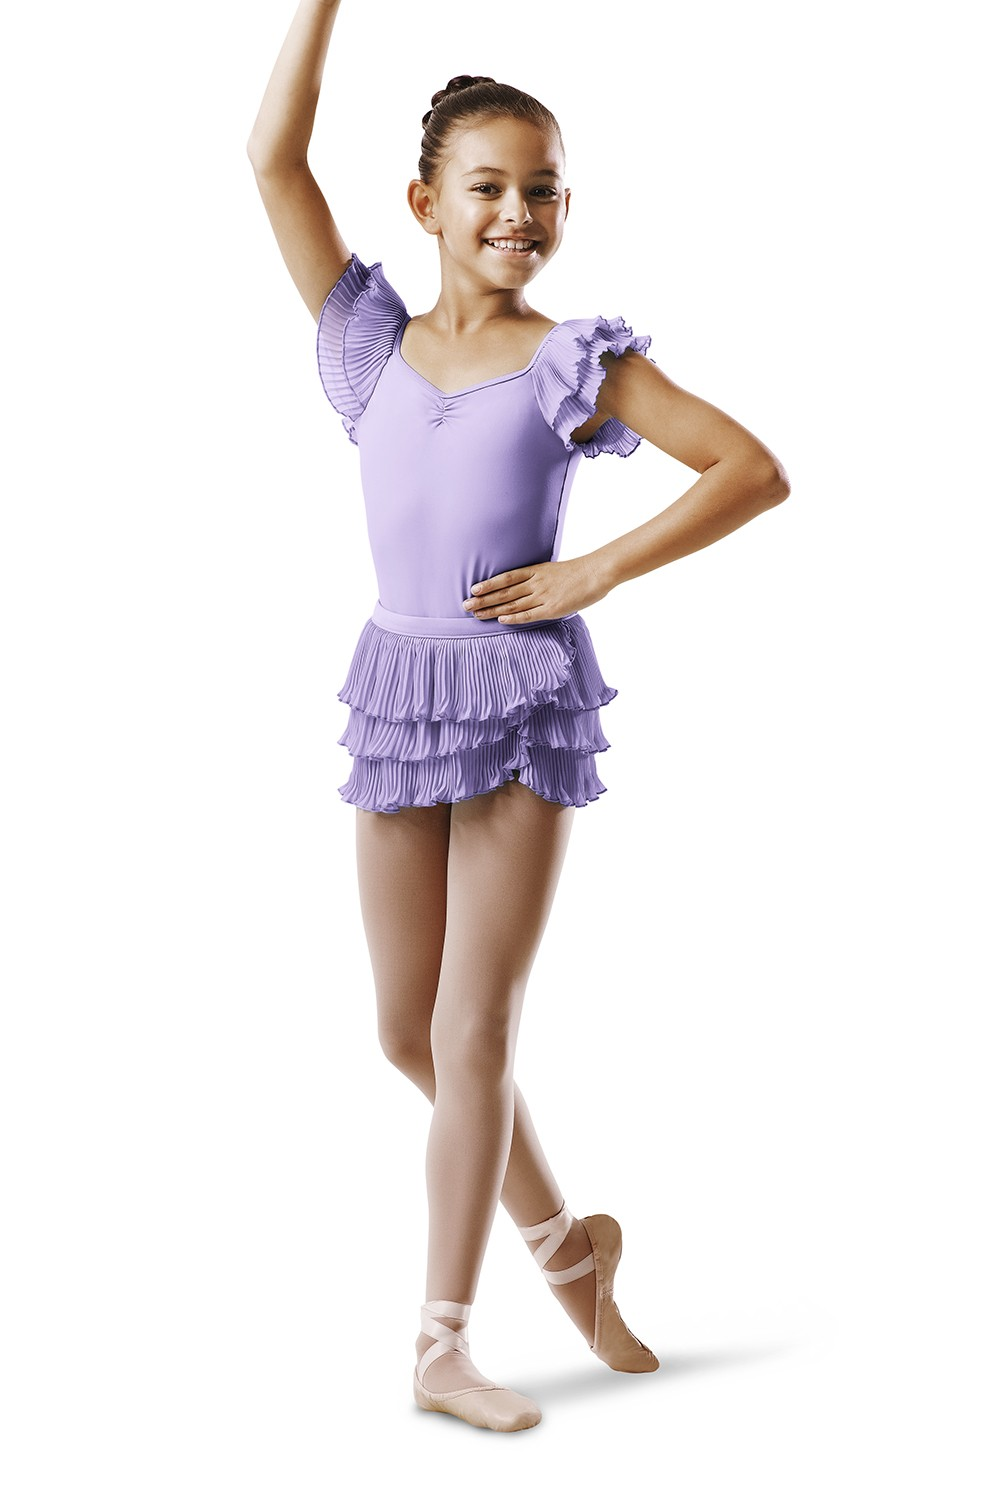 3 Tier Pltd Skirt Children's Dance Skirts